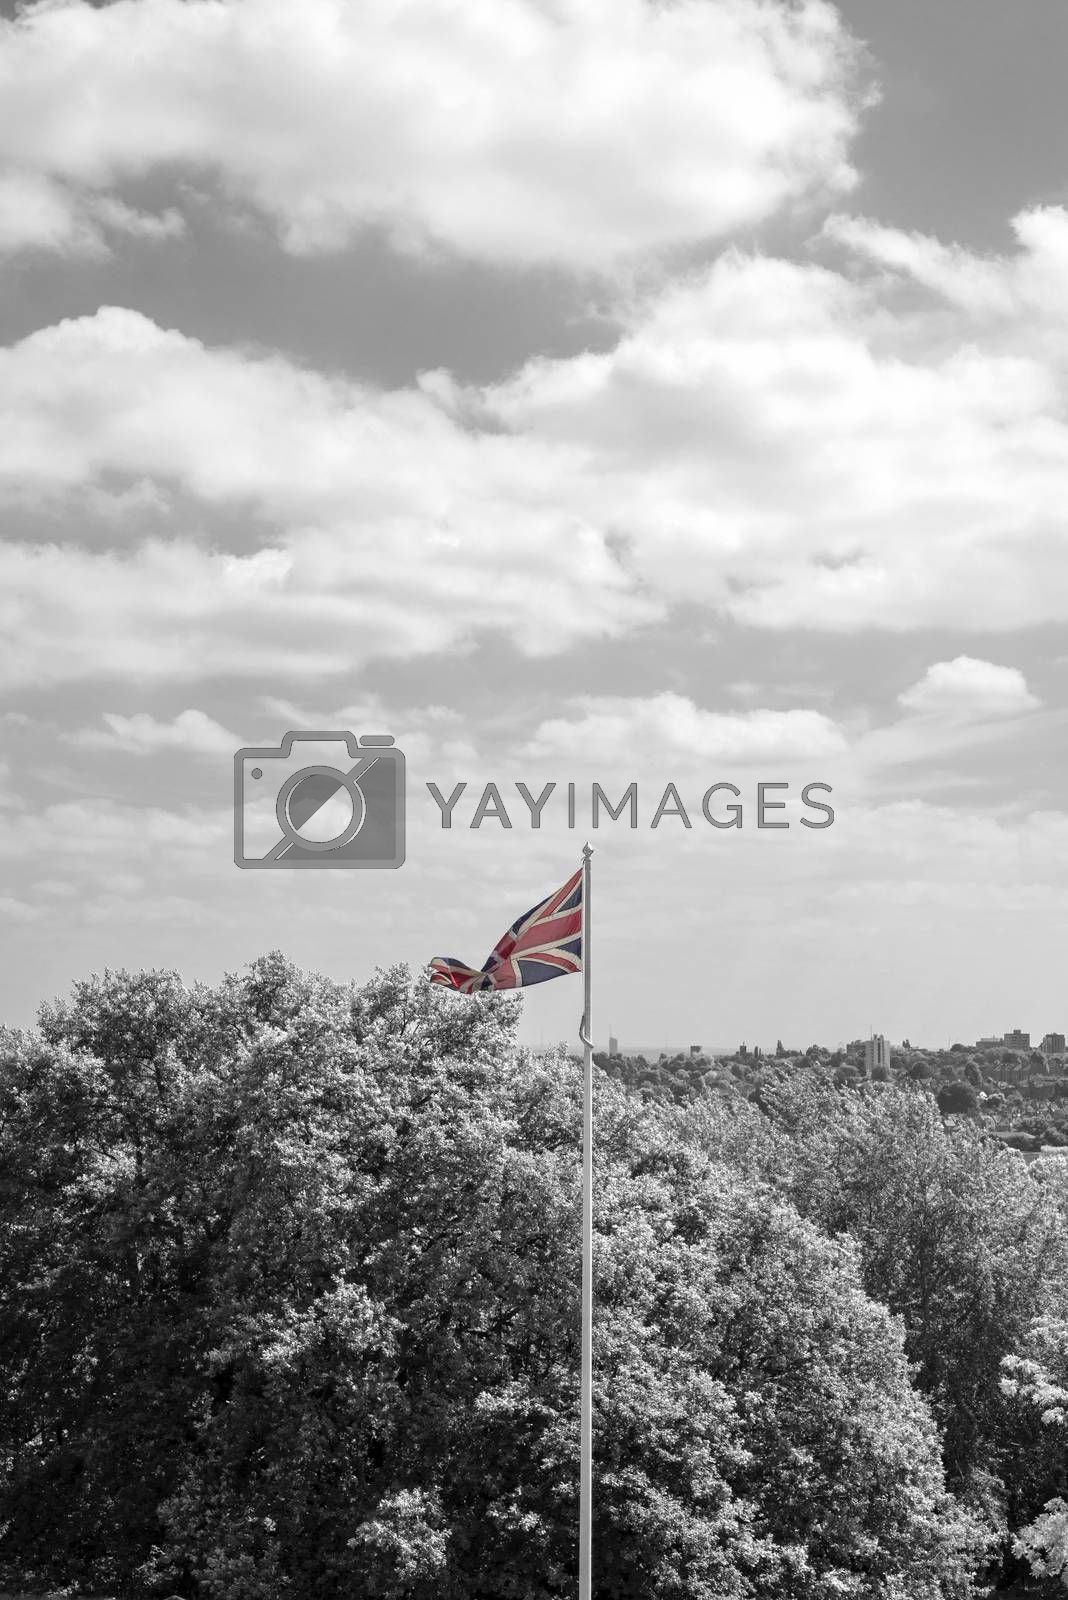 union jack flag flying from a pole in london in black and white